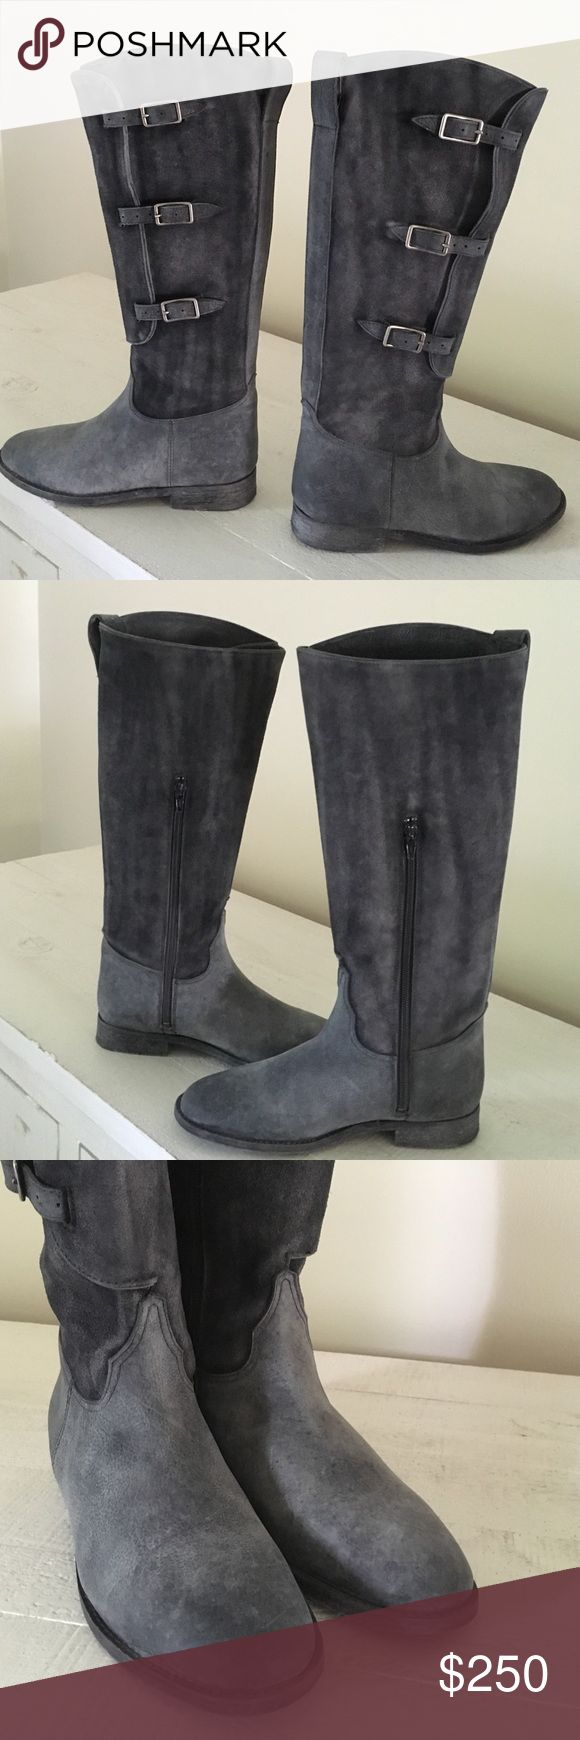 "NEW Free People Great Falls Bruna Tall boot Size 7 Gorgeous FP leather boots with adjustable buckles and inside zip for easy on/off.  Runs TTS.  1"" heel,  shaft is 16"", circumference is 16-17"" at most and can go smaller with buckles.  Price is firm and worth every penny! Free People Shoes Combat & Moto Boots"